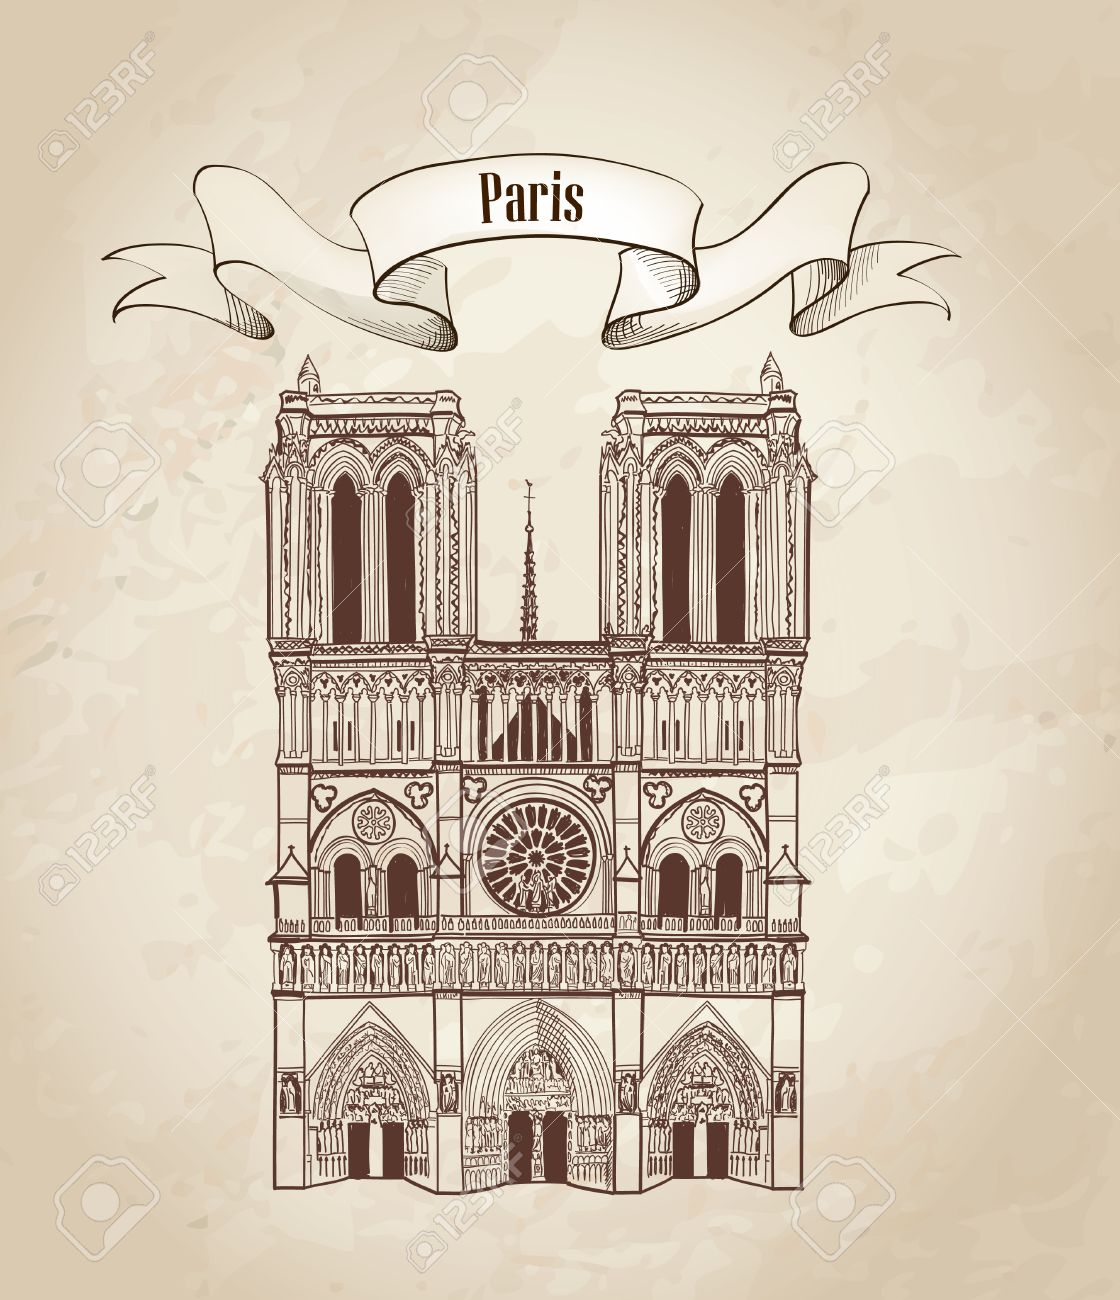 Notre Dame de Paris cathedral, France  Hand drawing vector illustration isolated on white background Stock Vector - 23320180